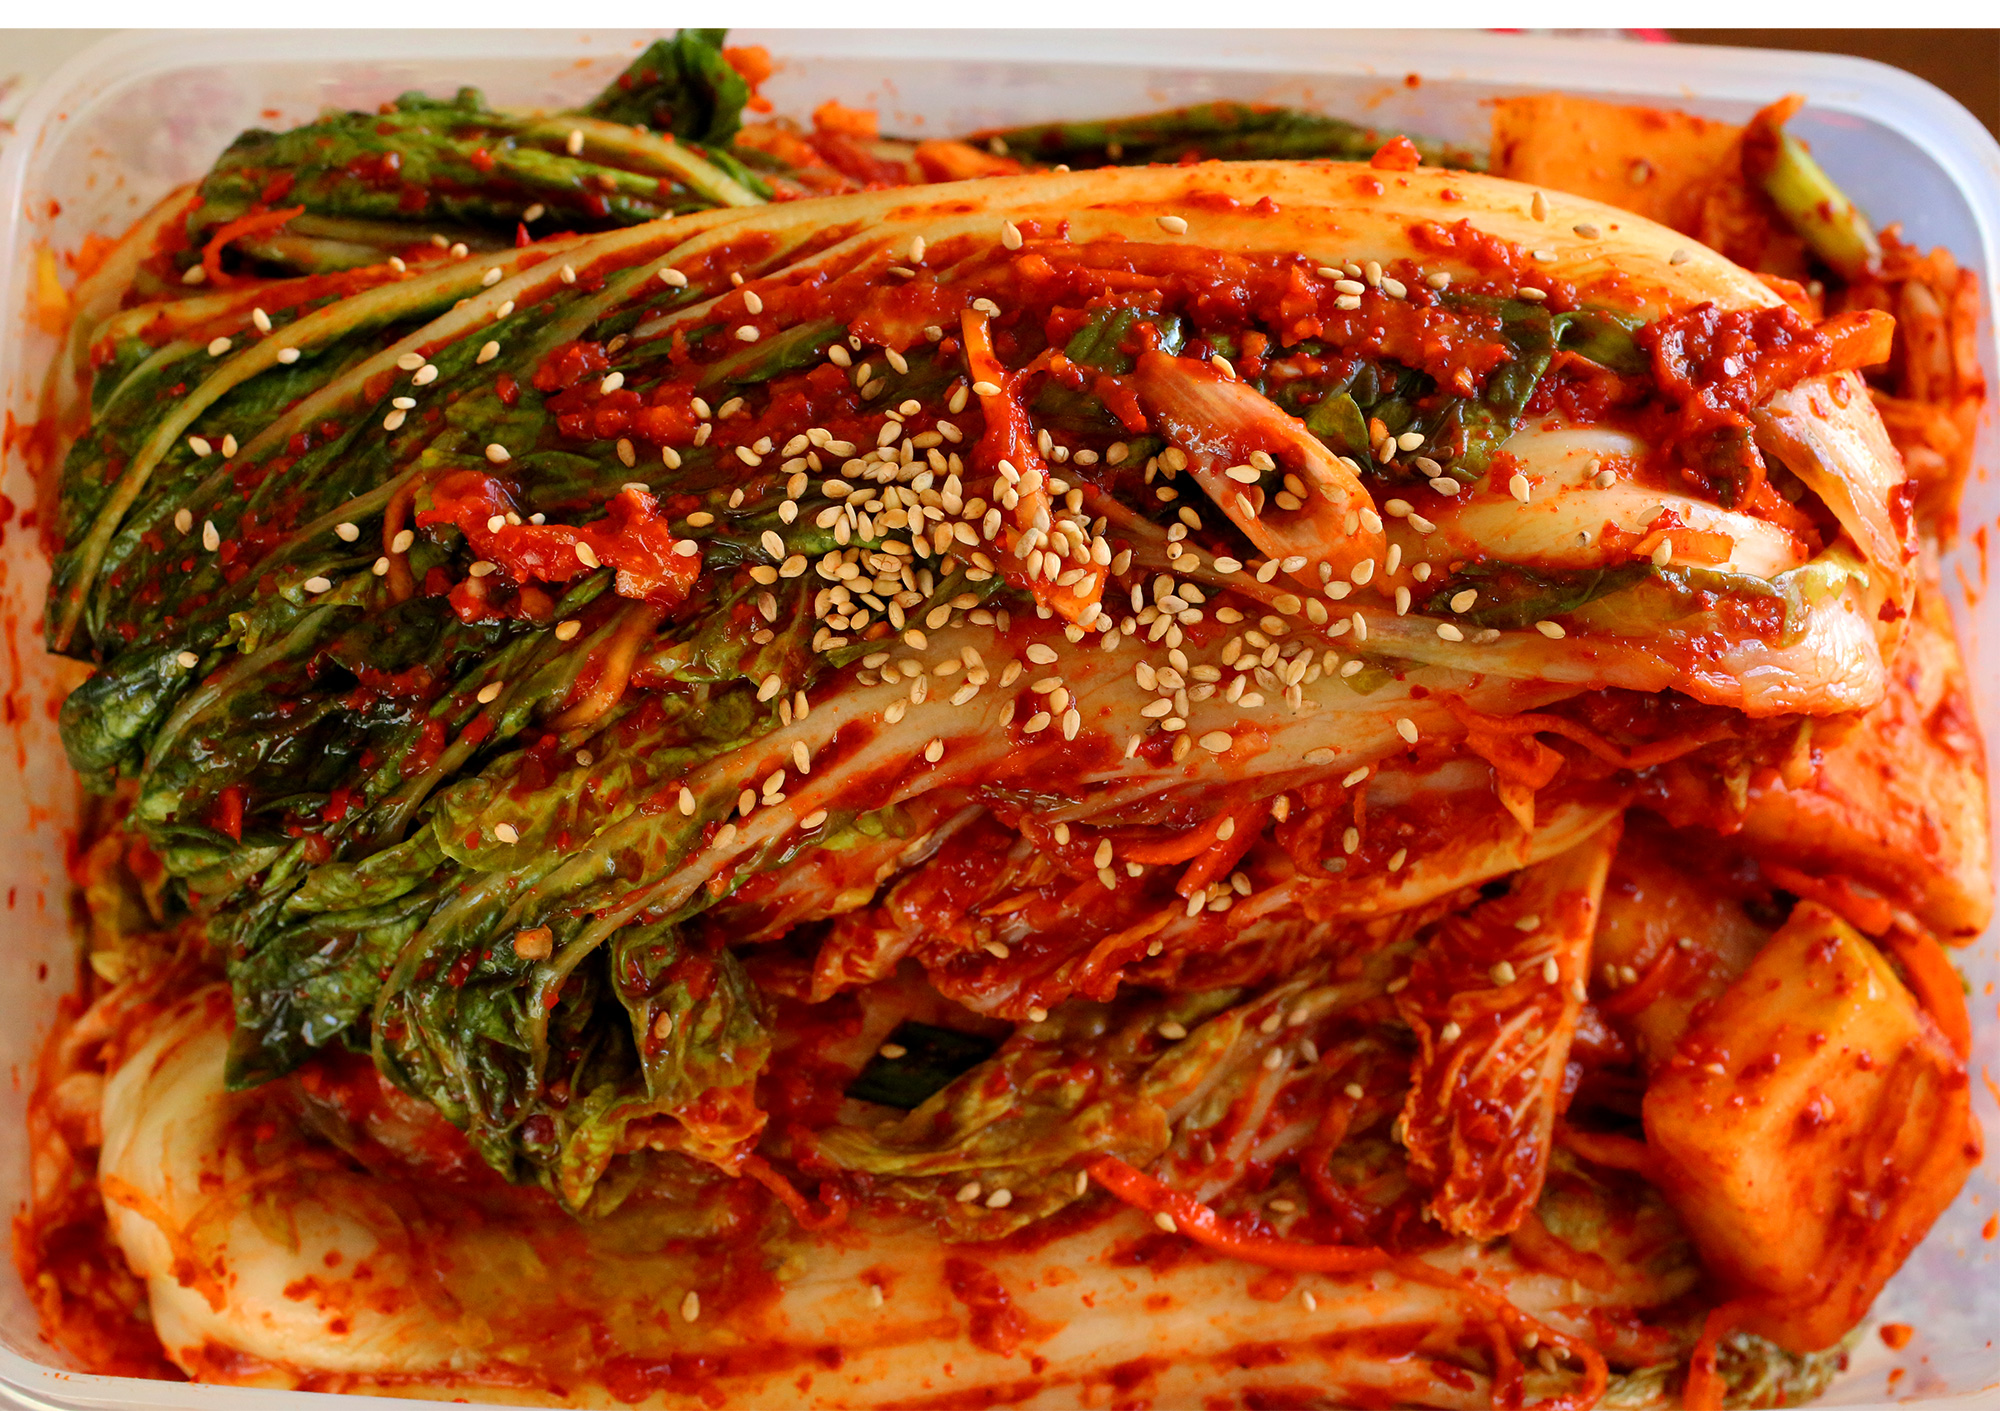 Korean food photo: Kimchi making day! - Maangchi.com